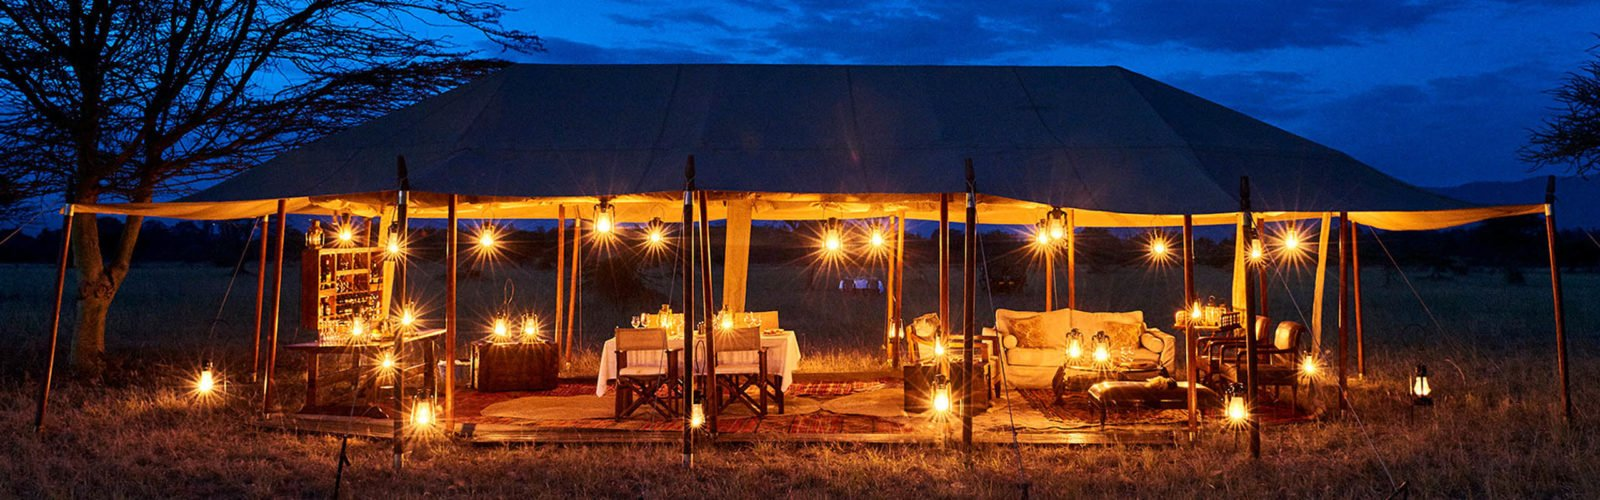 Legendary Serengeti Camp, Tanzania, lit up at night